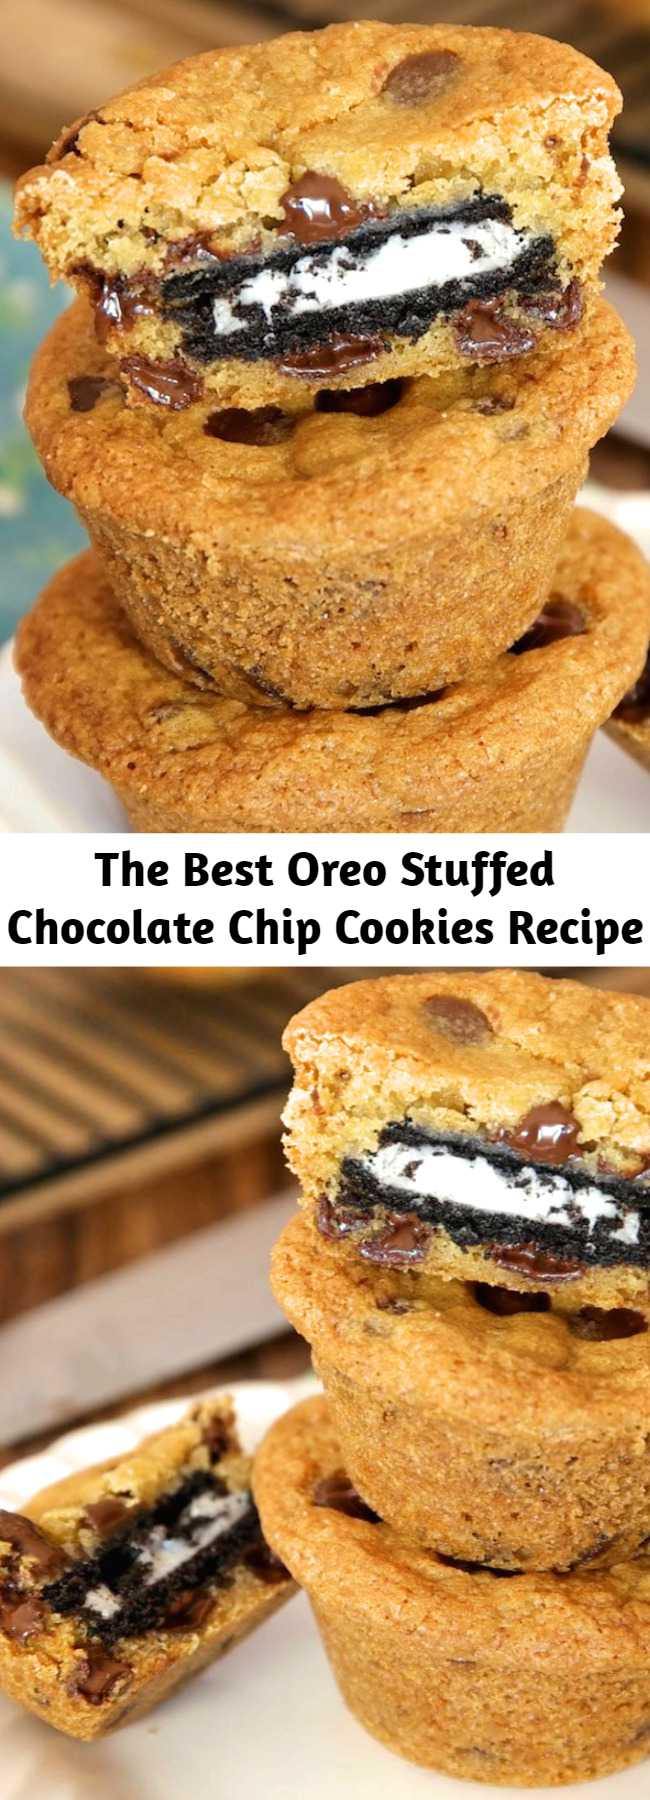 Oreo Stuffed Chocolate Chip Cookies – The BEST soft and chewy chocolate chip cookies stuffed with moist Oreos! They take about 30 minutes to make and all you need is your favorite chocolate chip cookie dough and Oreos! So simple and so delicious!